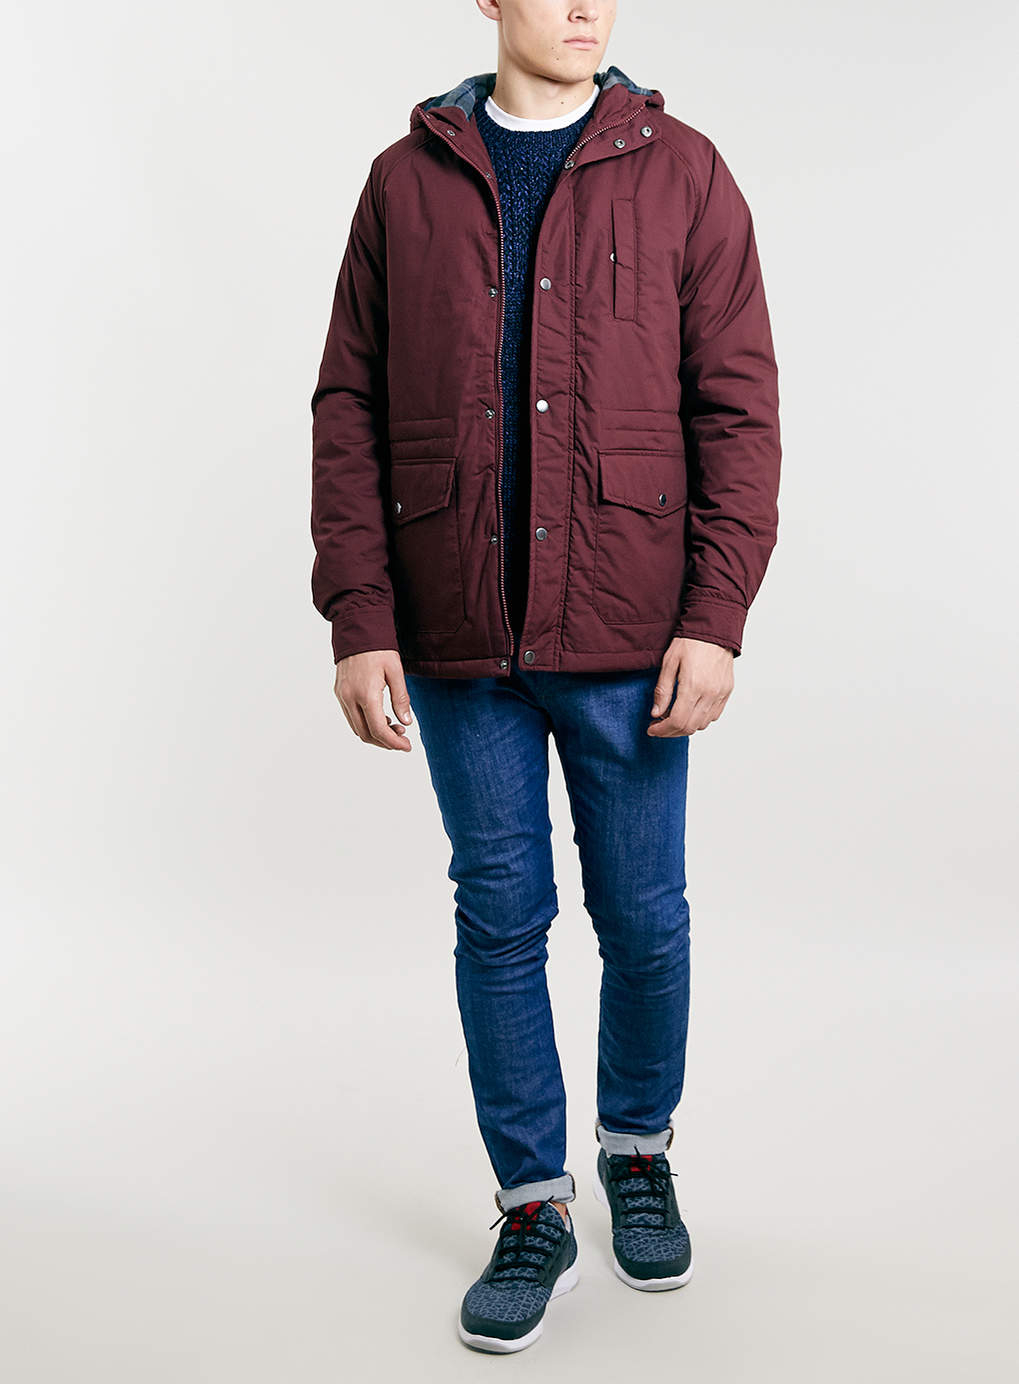 Lac burgundy hooded jacket in red for men lyst